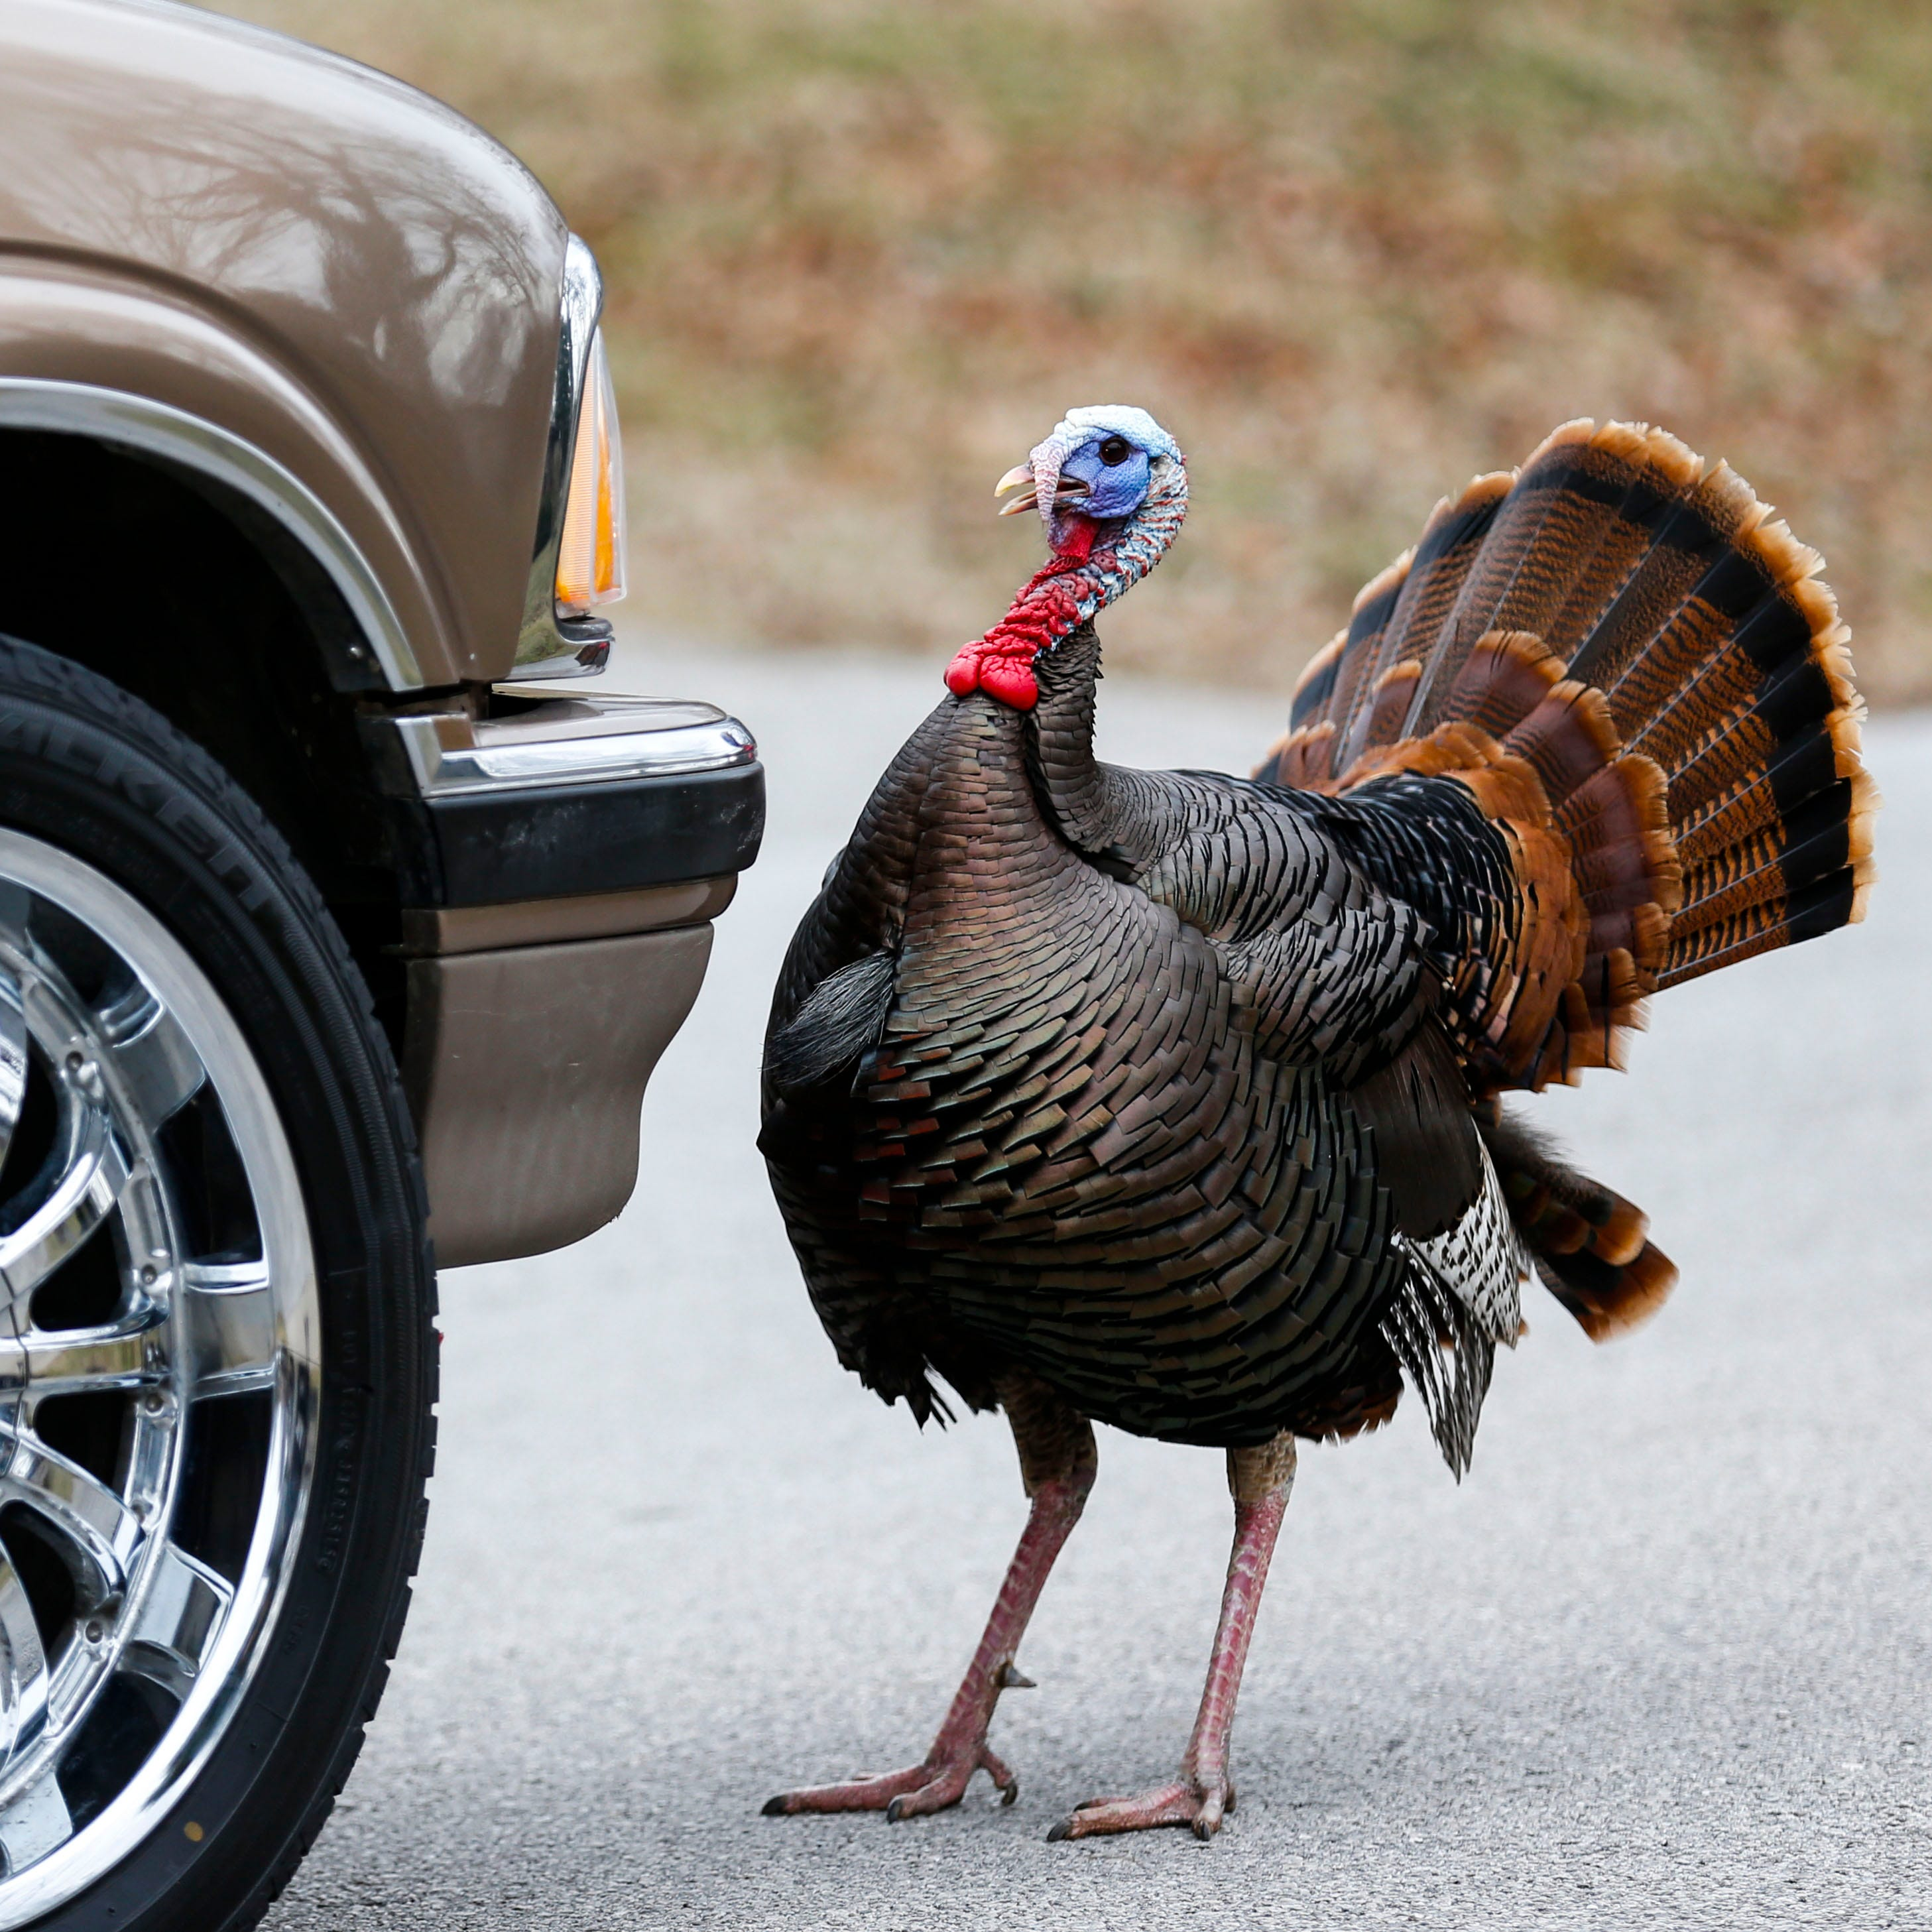 Turkey plays chicken with cars in Springfield neighborhood